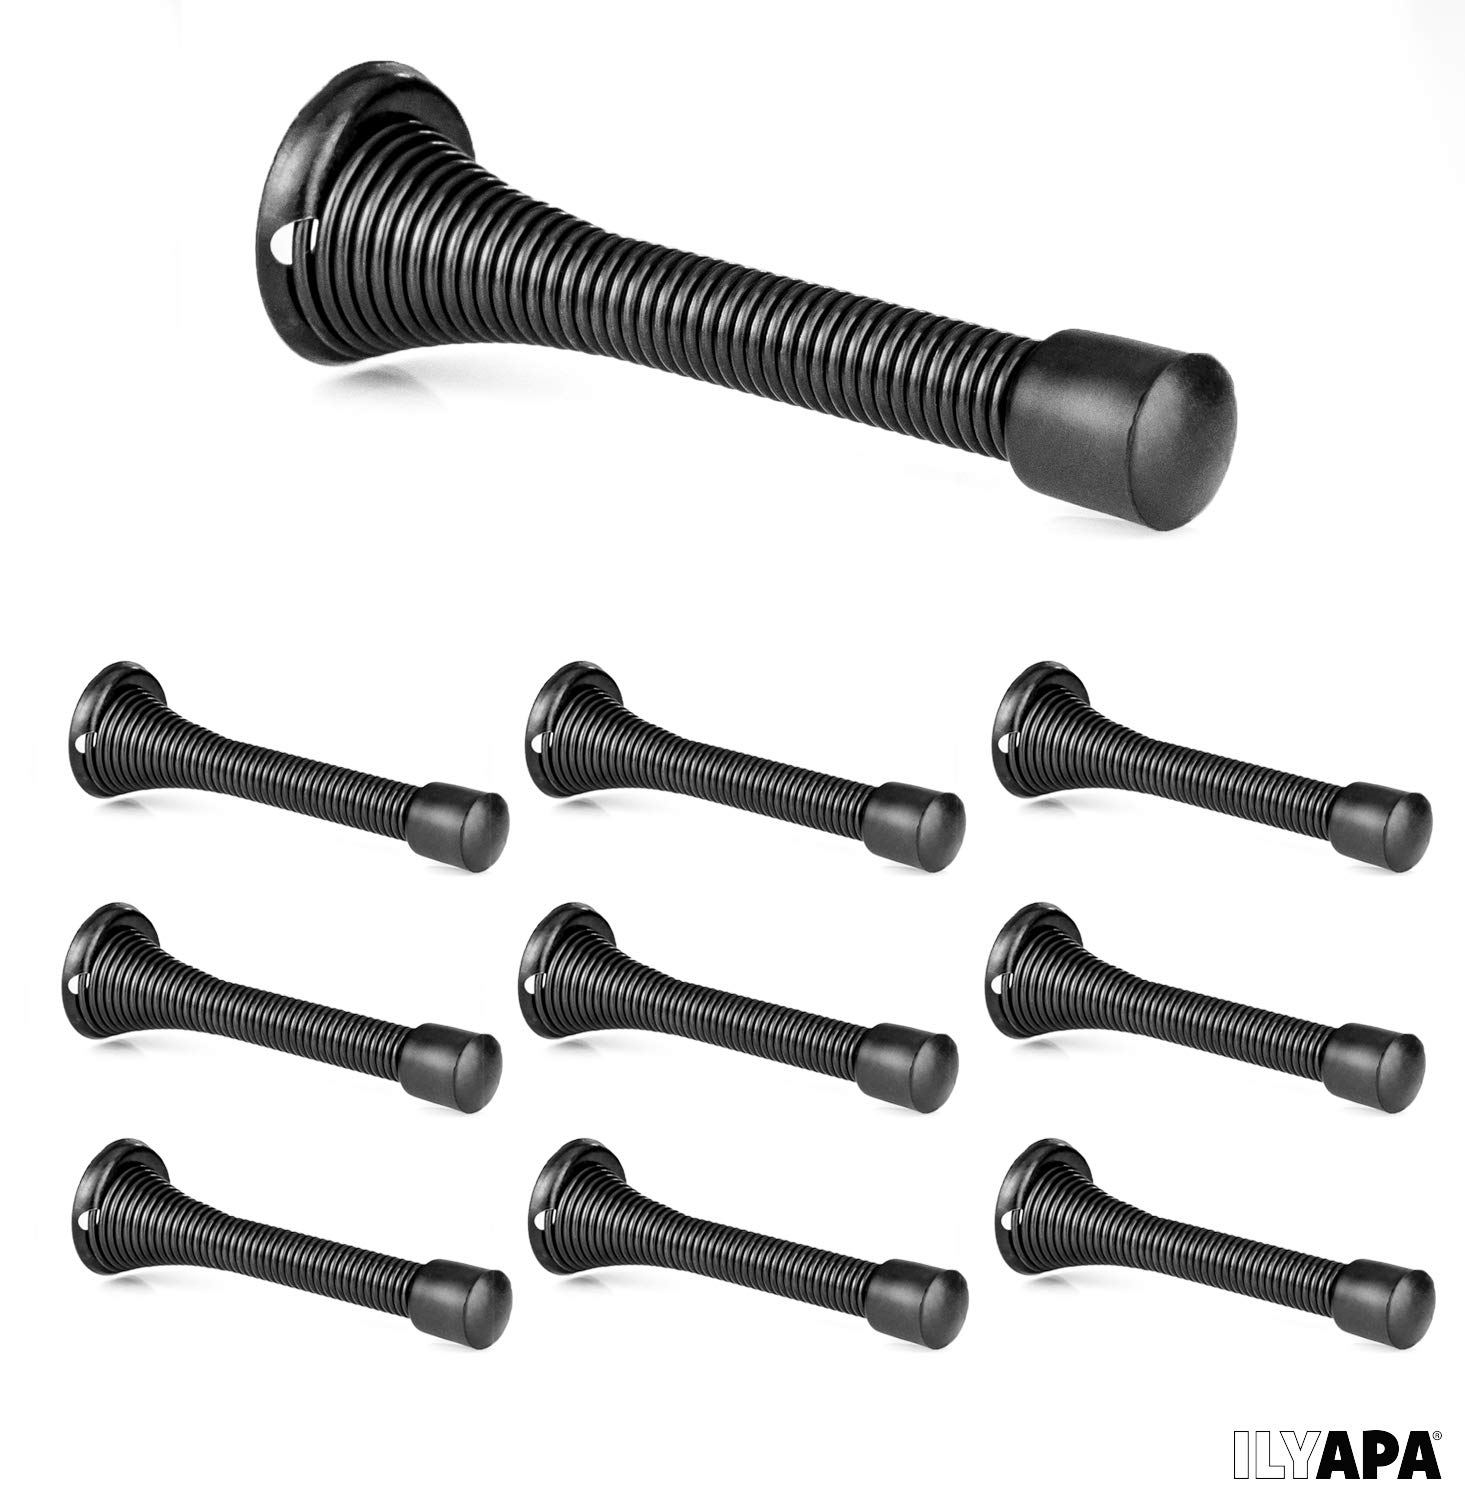 10 Pack of Spring Door Stops Black - 3 ¼ Inch Heavy Duty Door Stop - Traditional Spring Door Stop with Rubber Bumper by Ilyapa (Image #7)